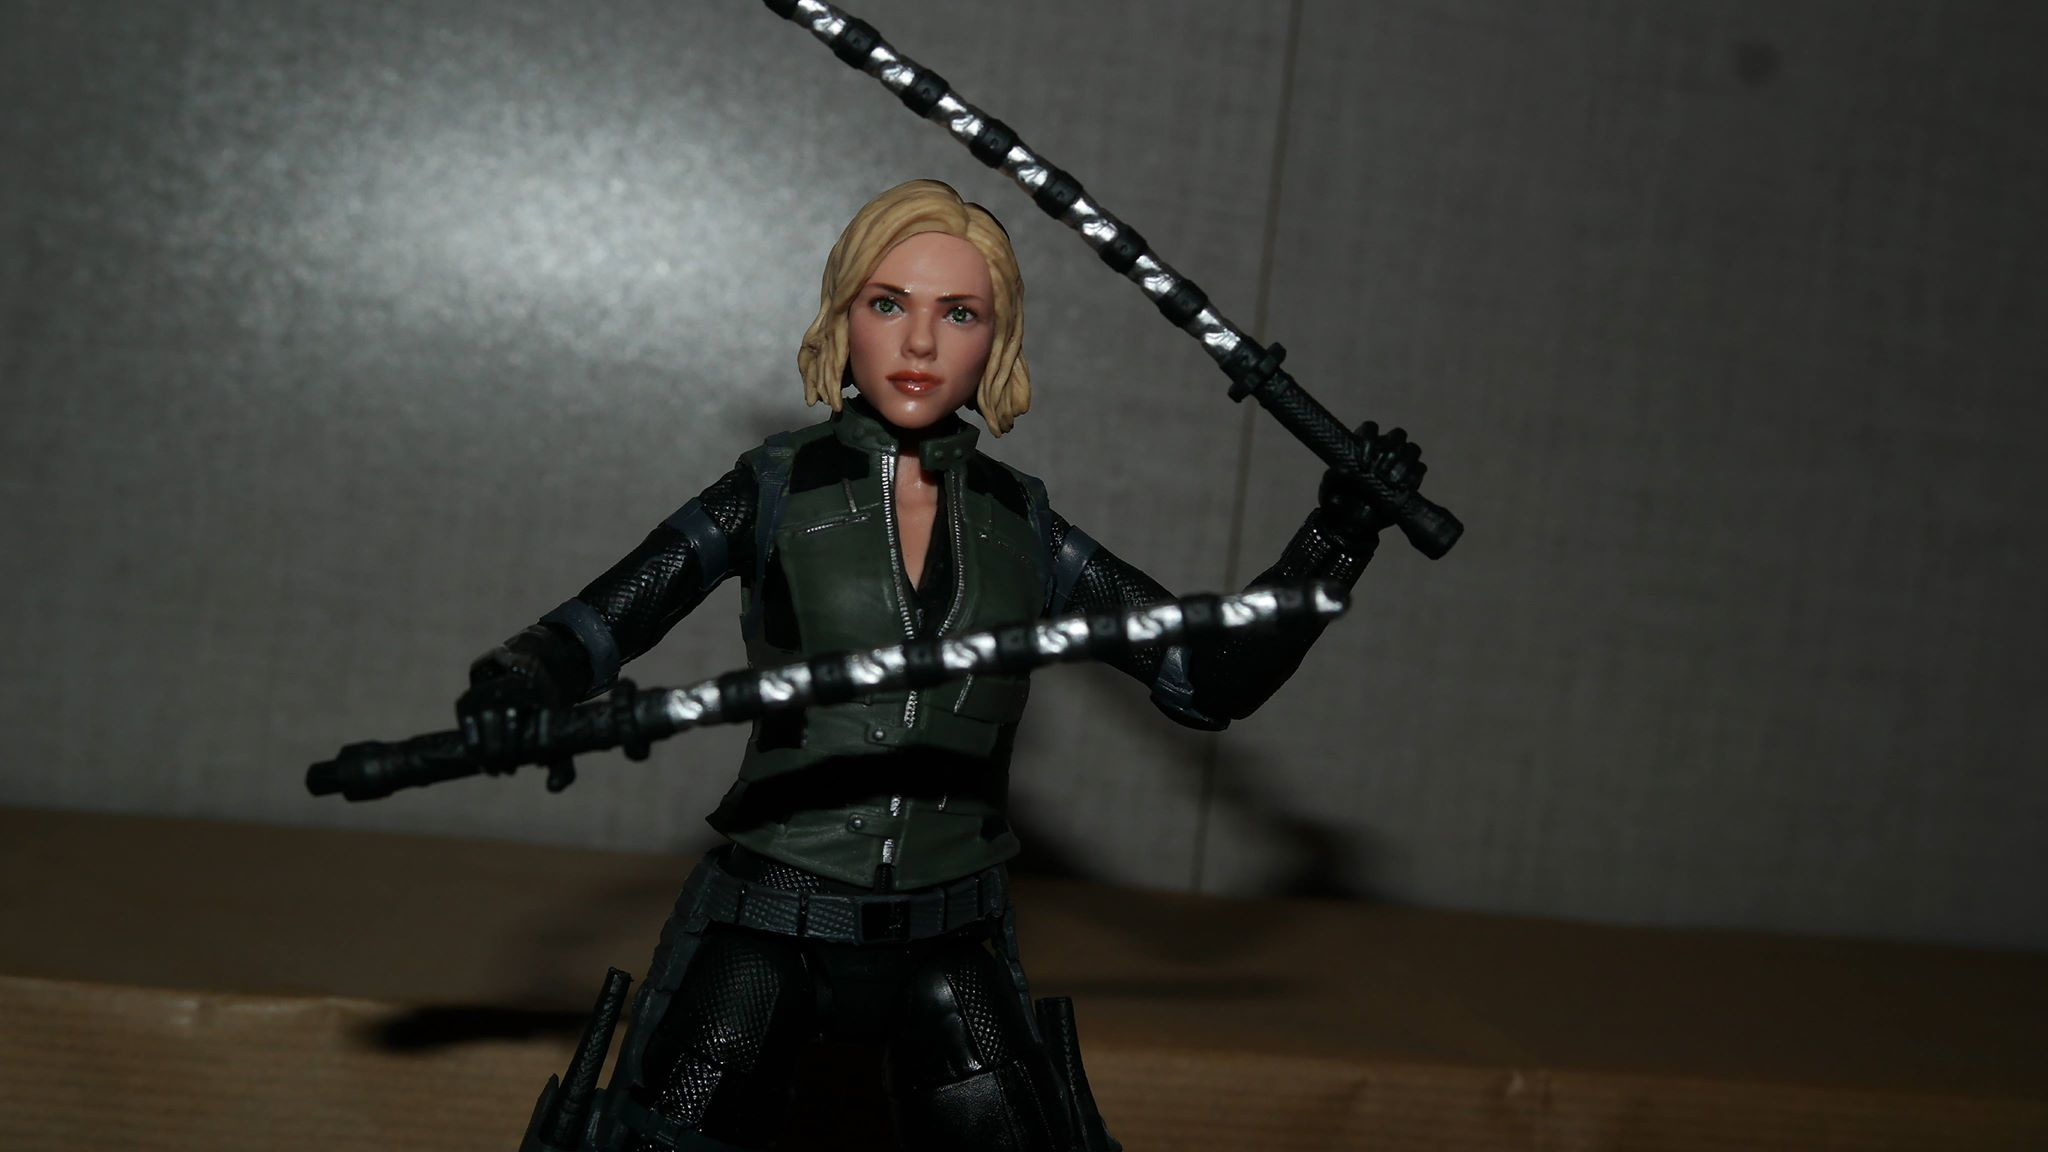 Marvel Legends Black Widow Avengers Infinity War Review 5